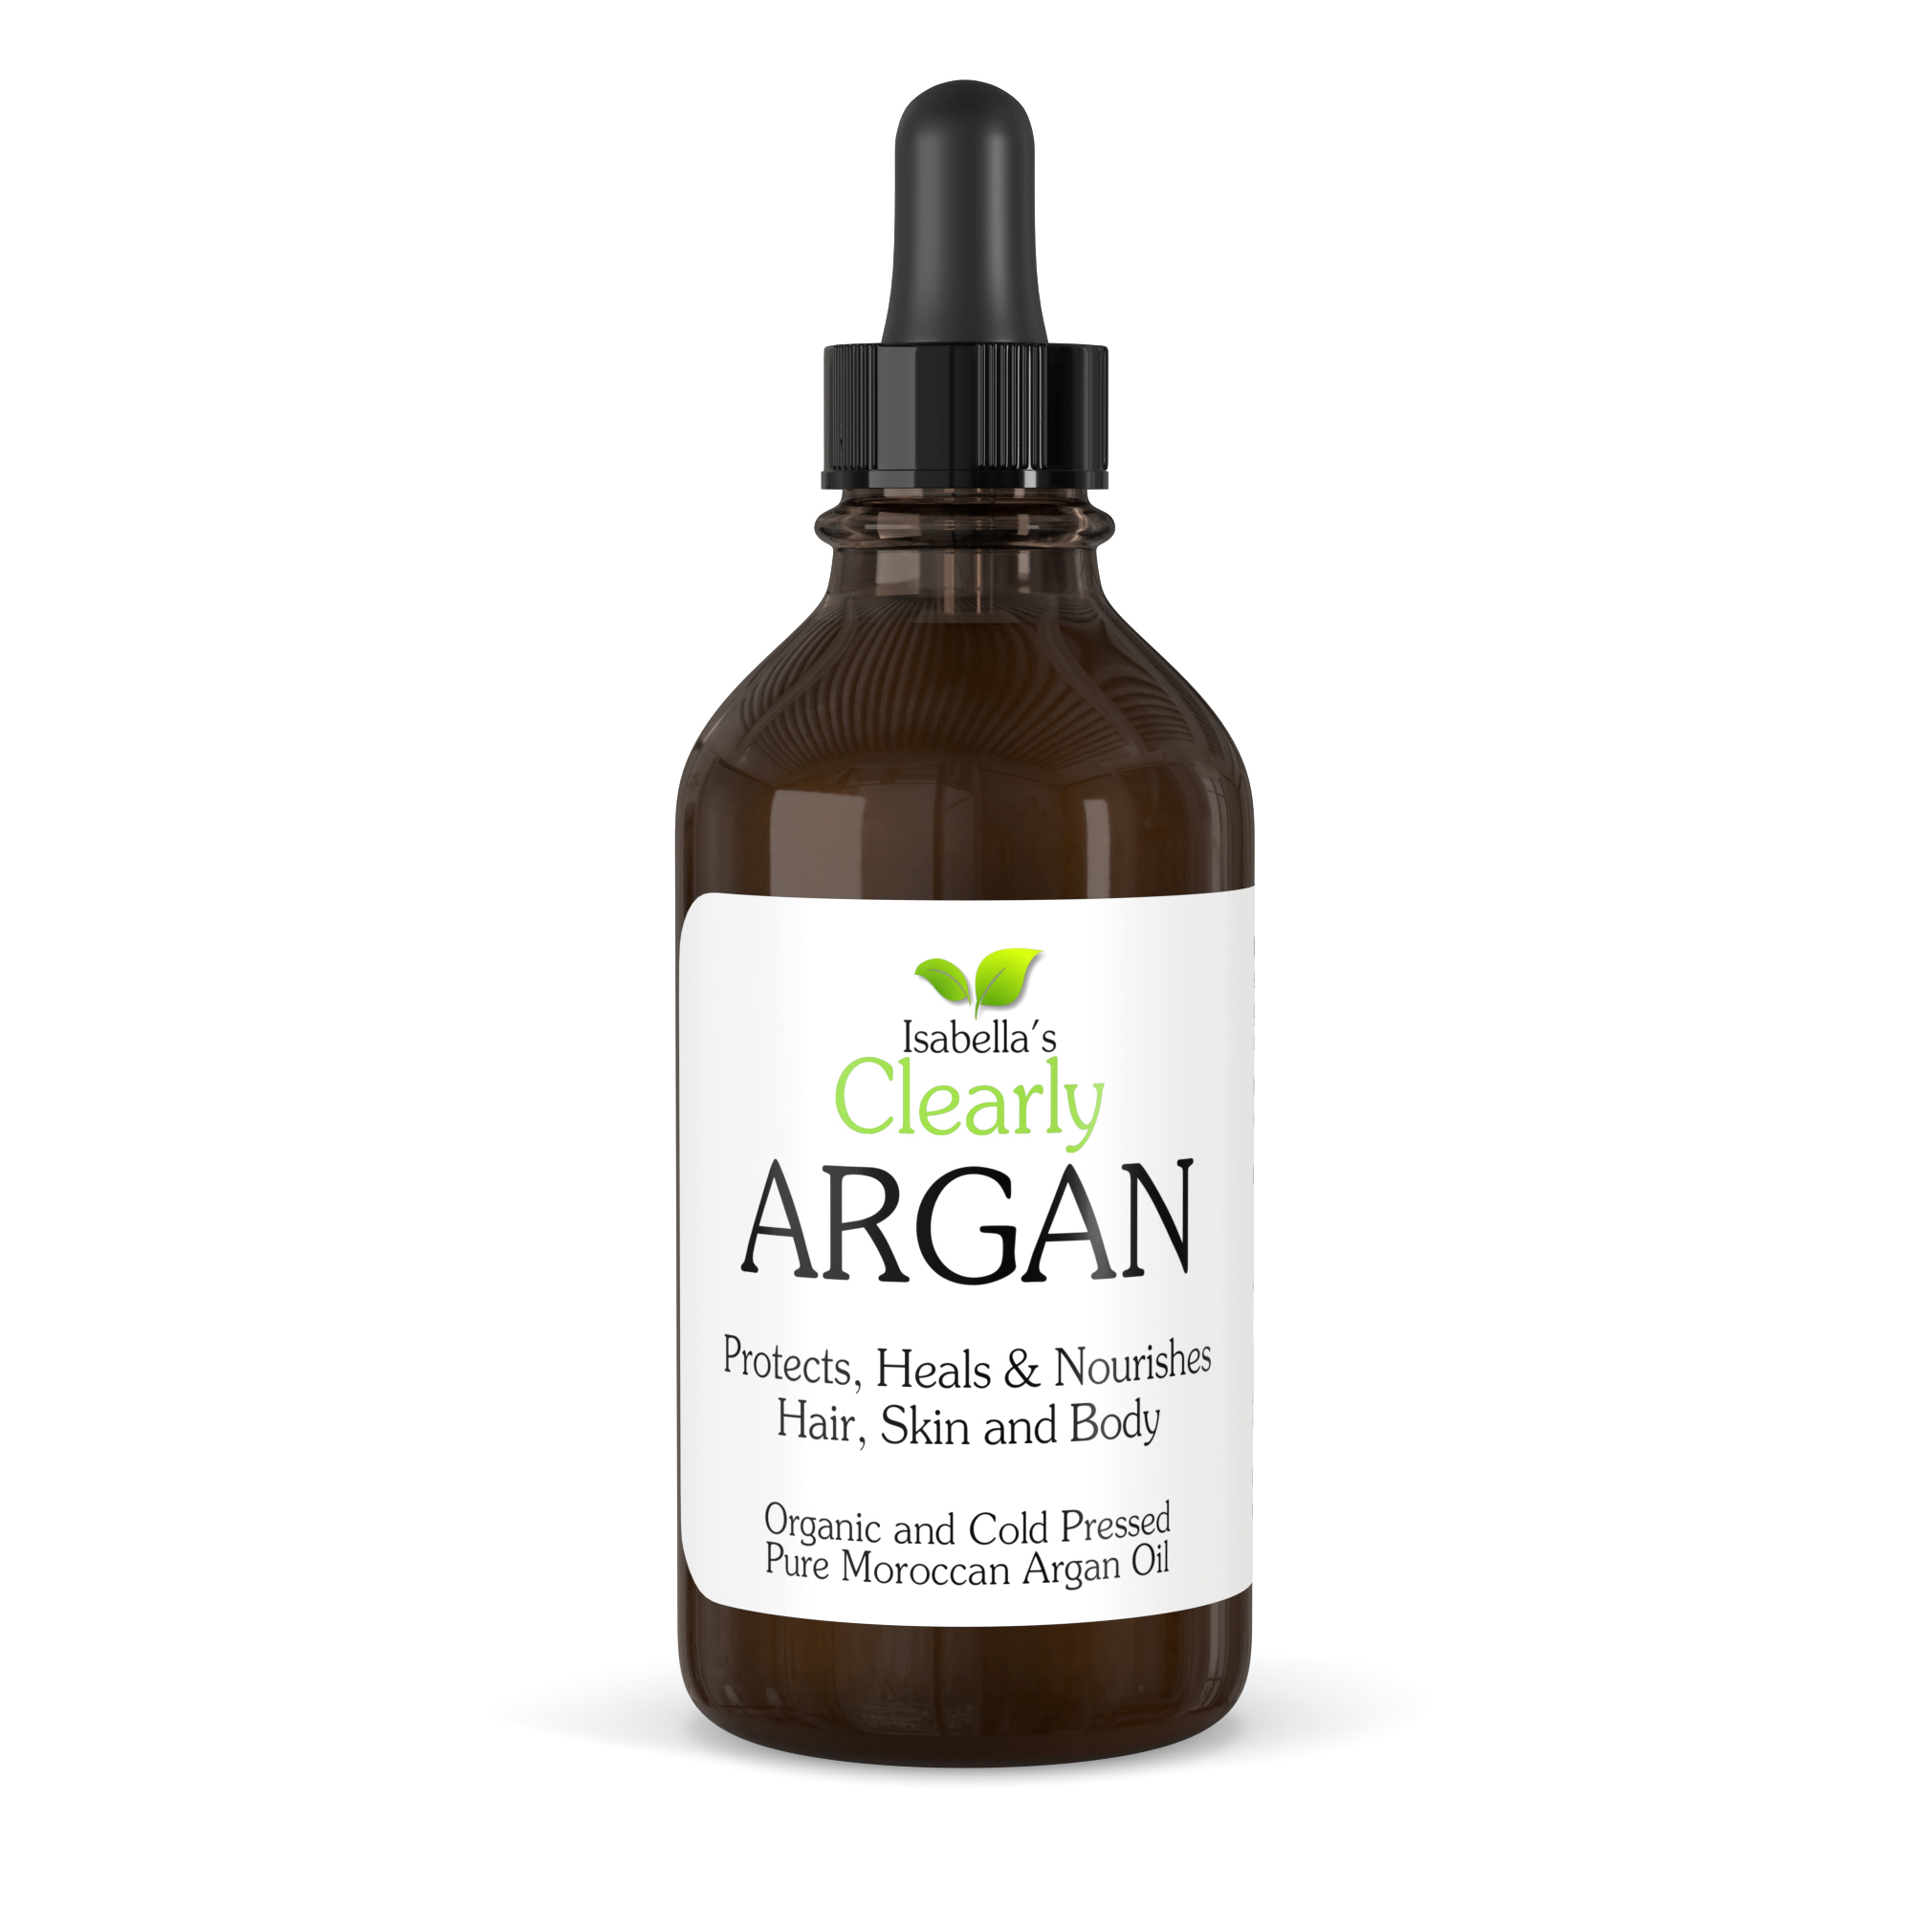 Clearly ARGAN, Organic Cold-Pressed Moroccan Argan Oil